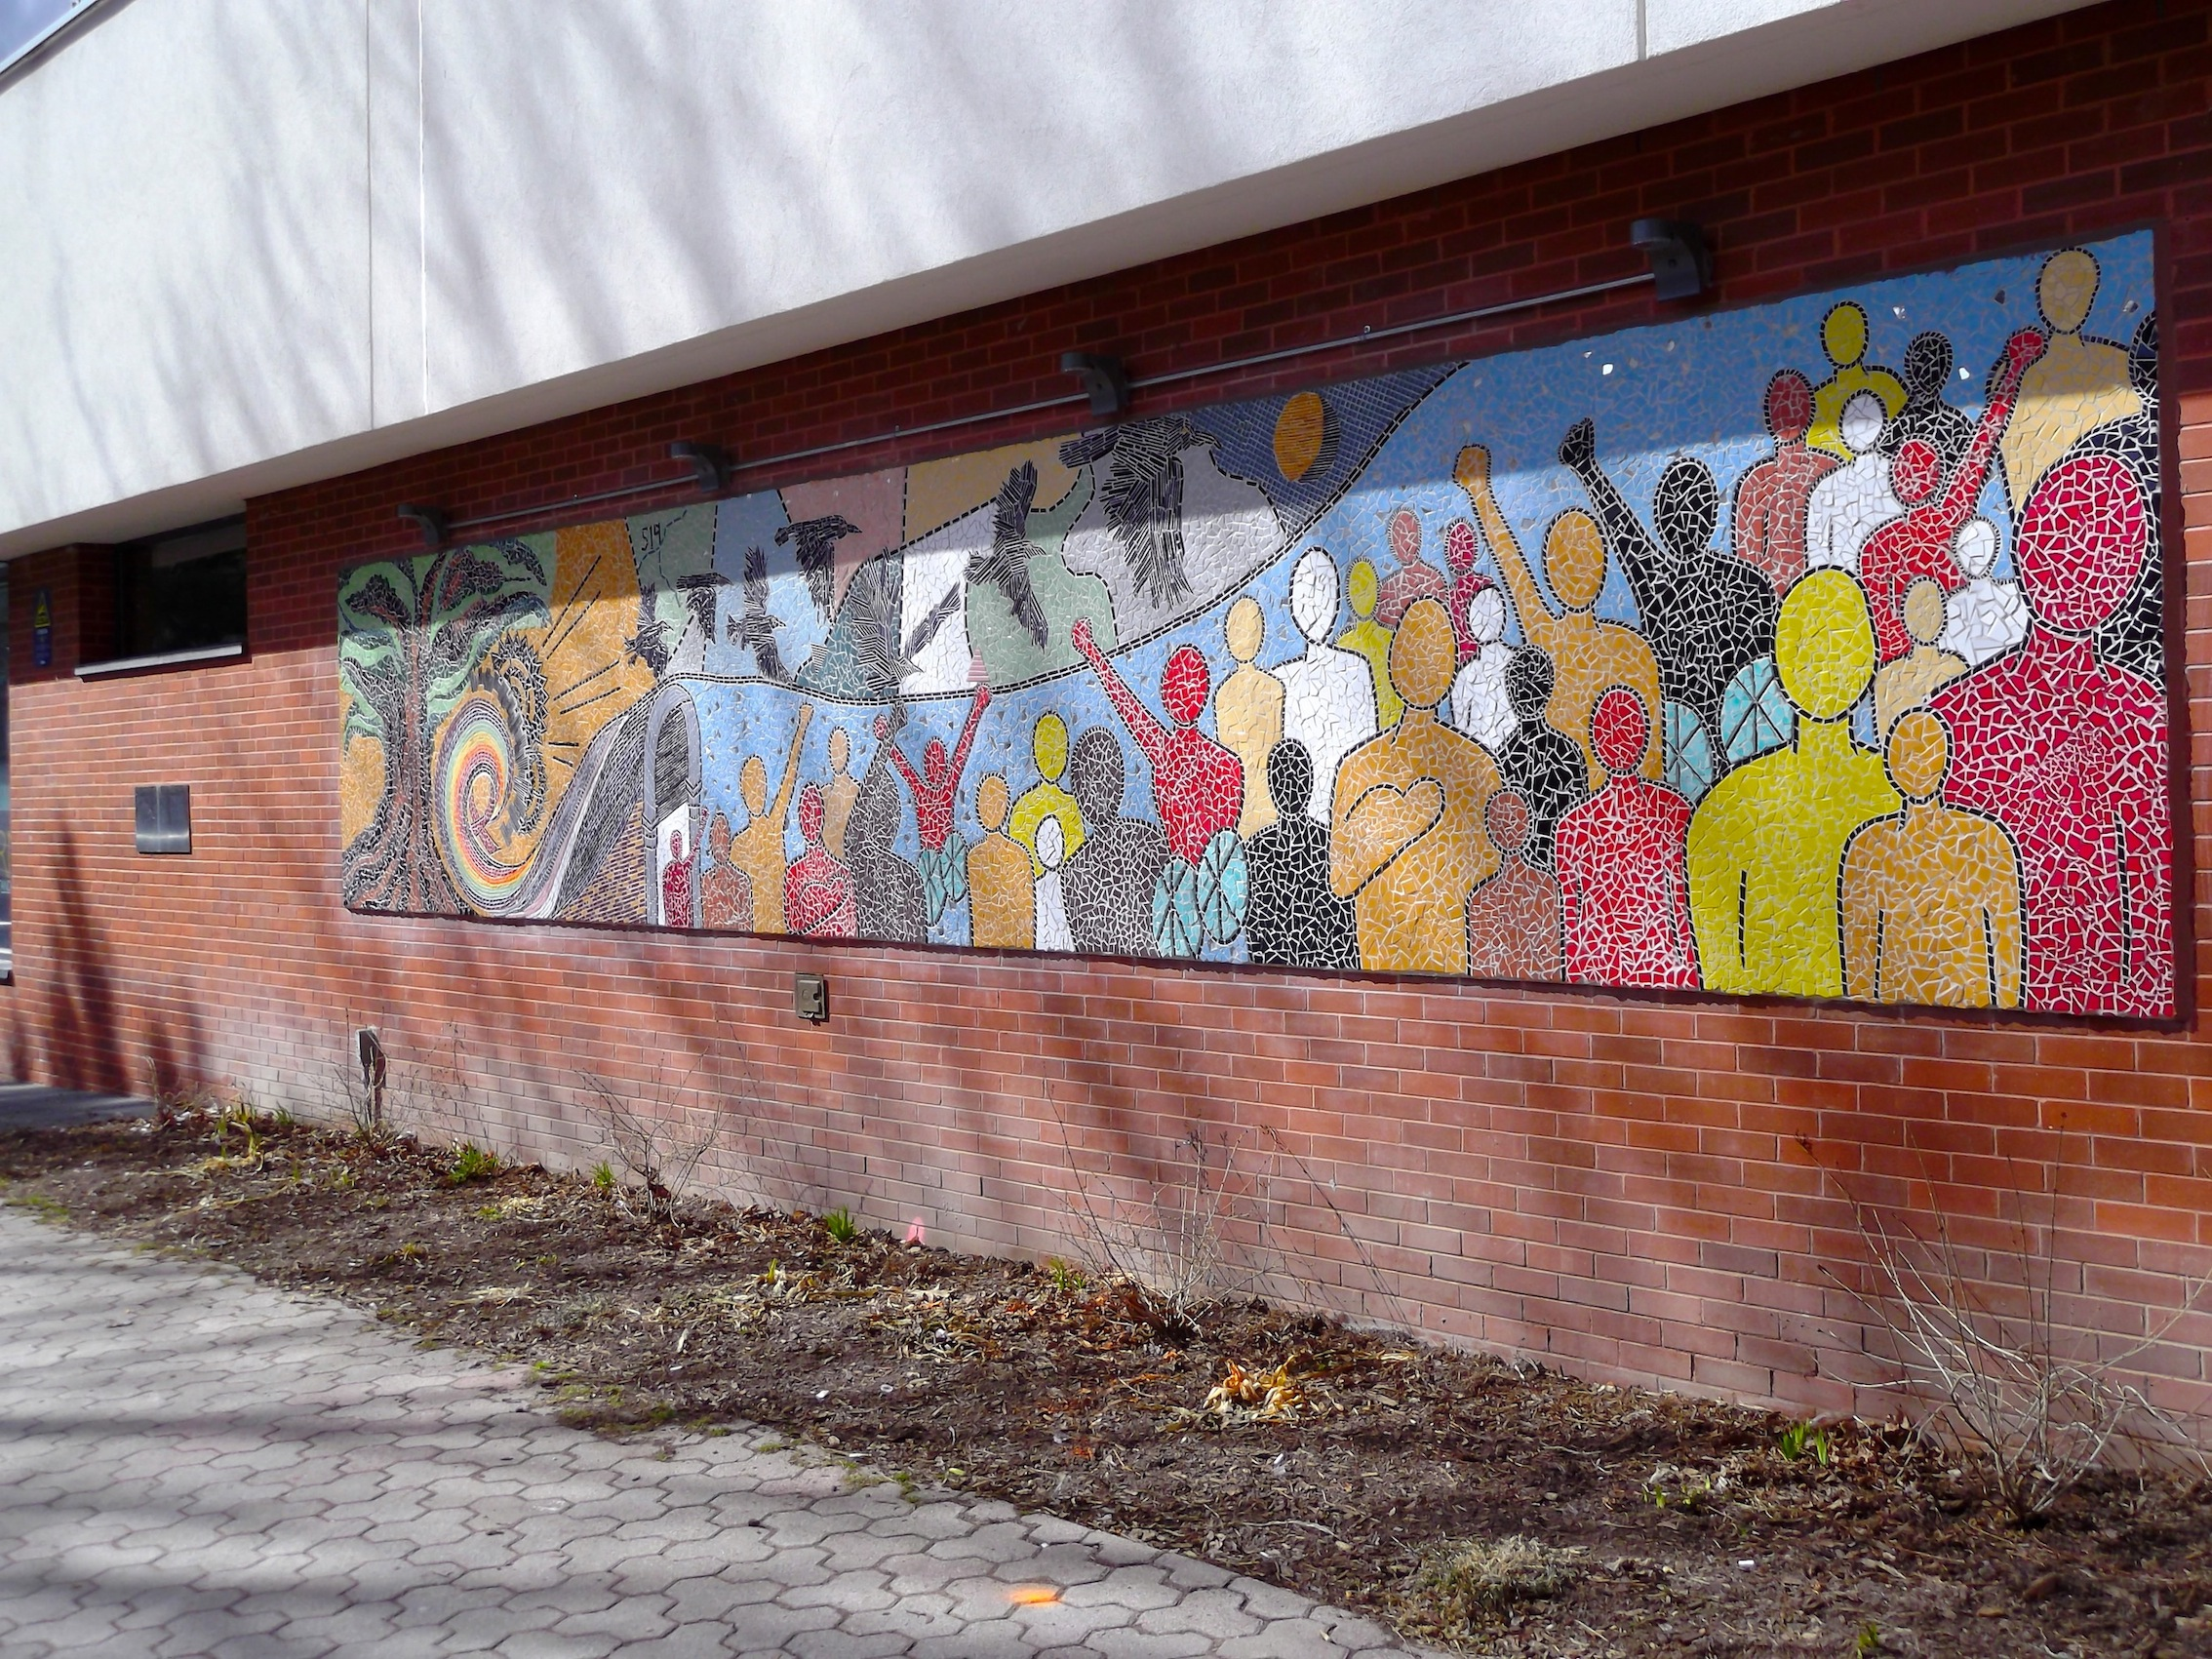 [Image description: A sideways photograph of the full-length rectangular mural running on a brick wall. The mural shows people of all colours and abilities standing together while black birds fly overhead in a colourful sky with a sun, a spiral rainbow, and a red AIDS ribbon all included in the design]